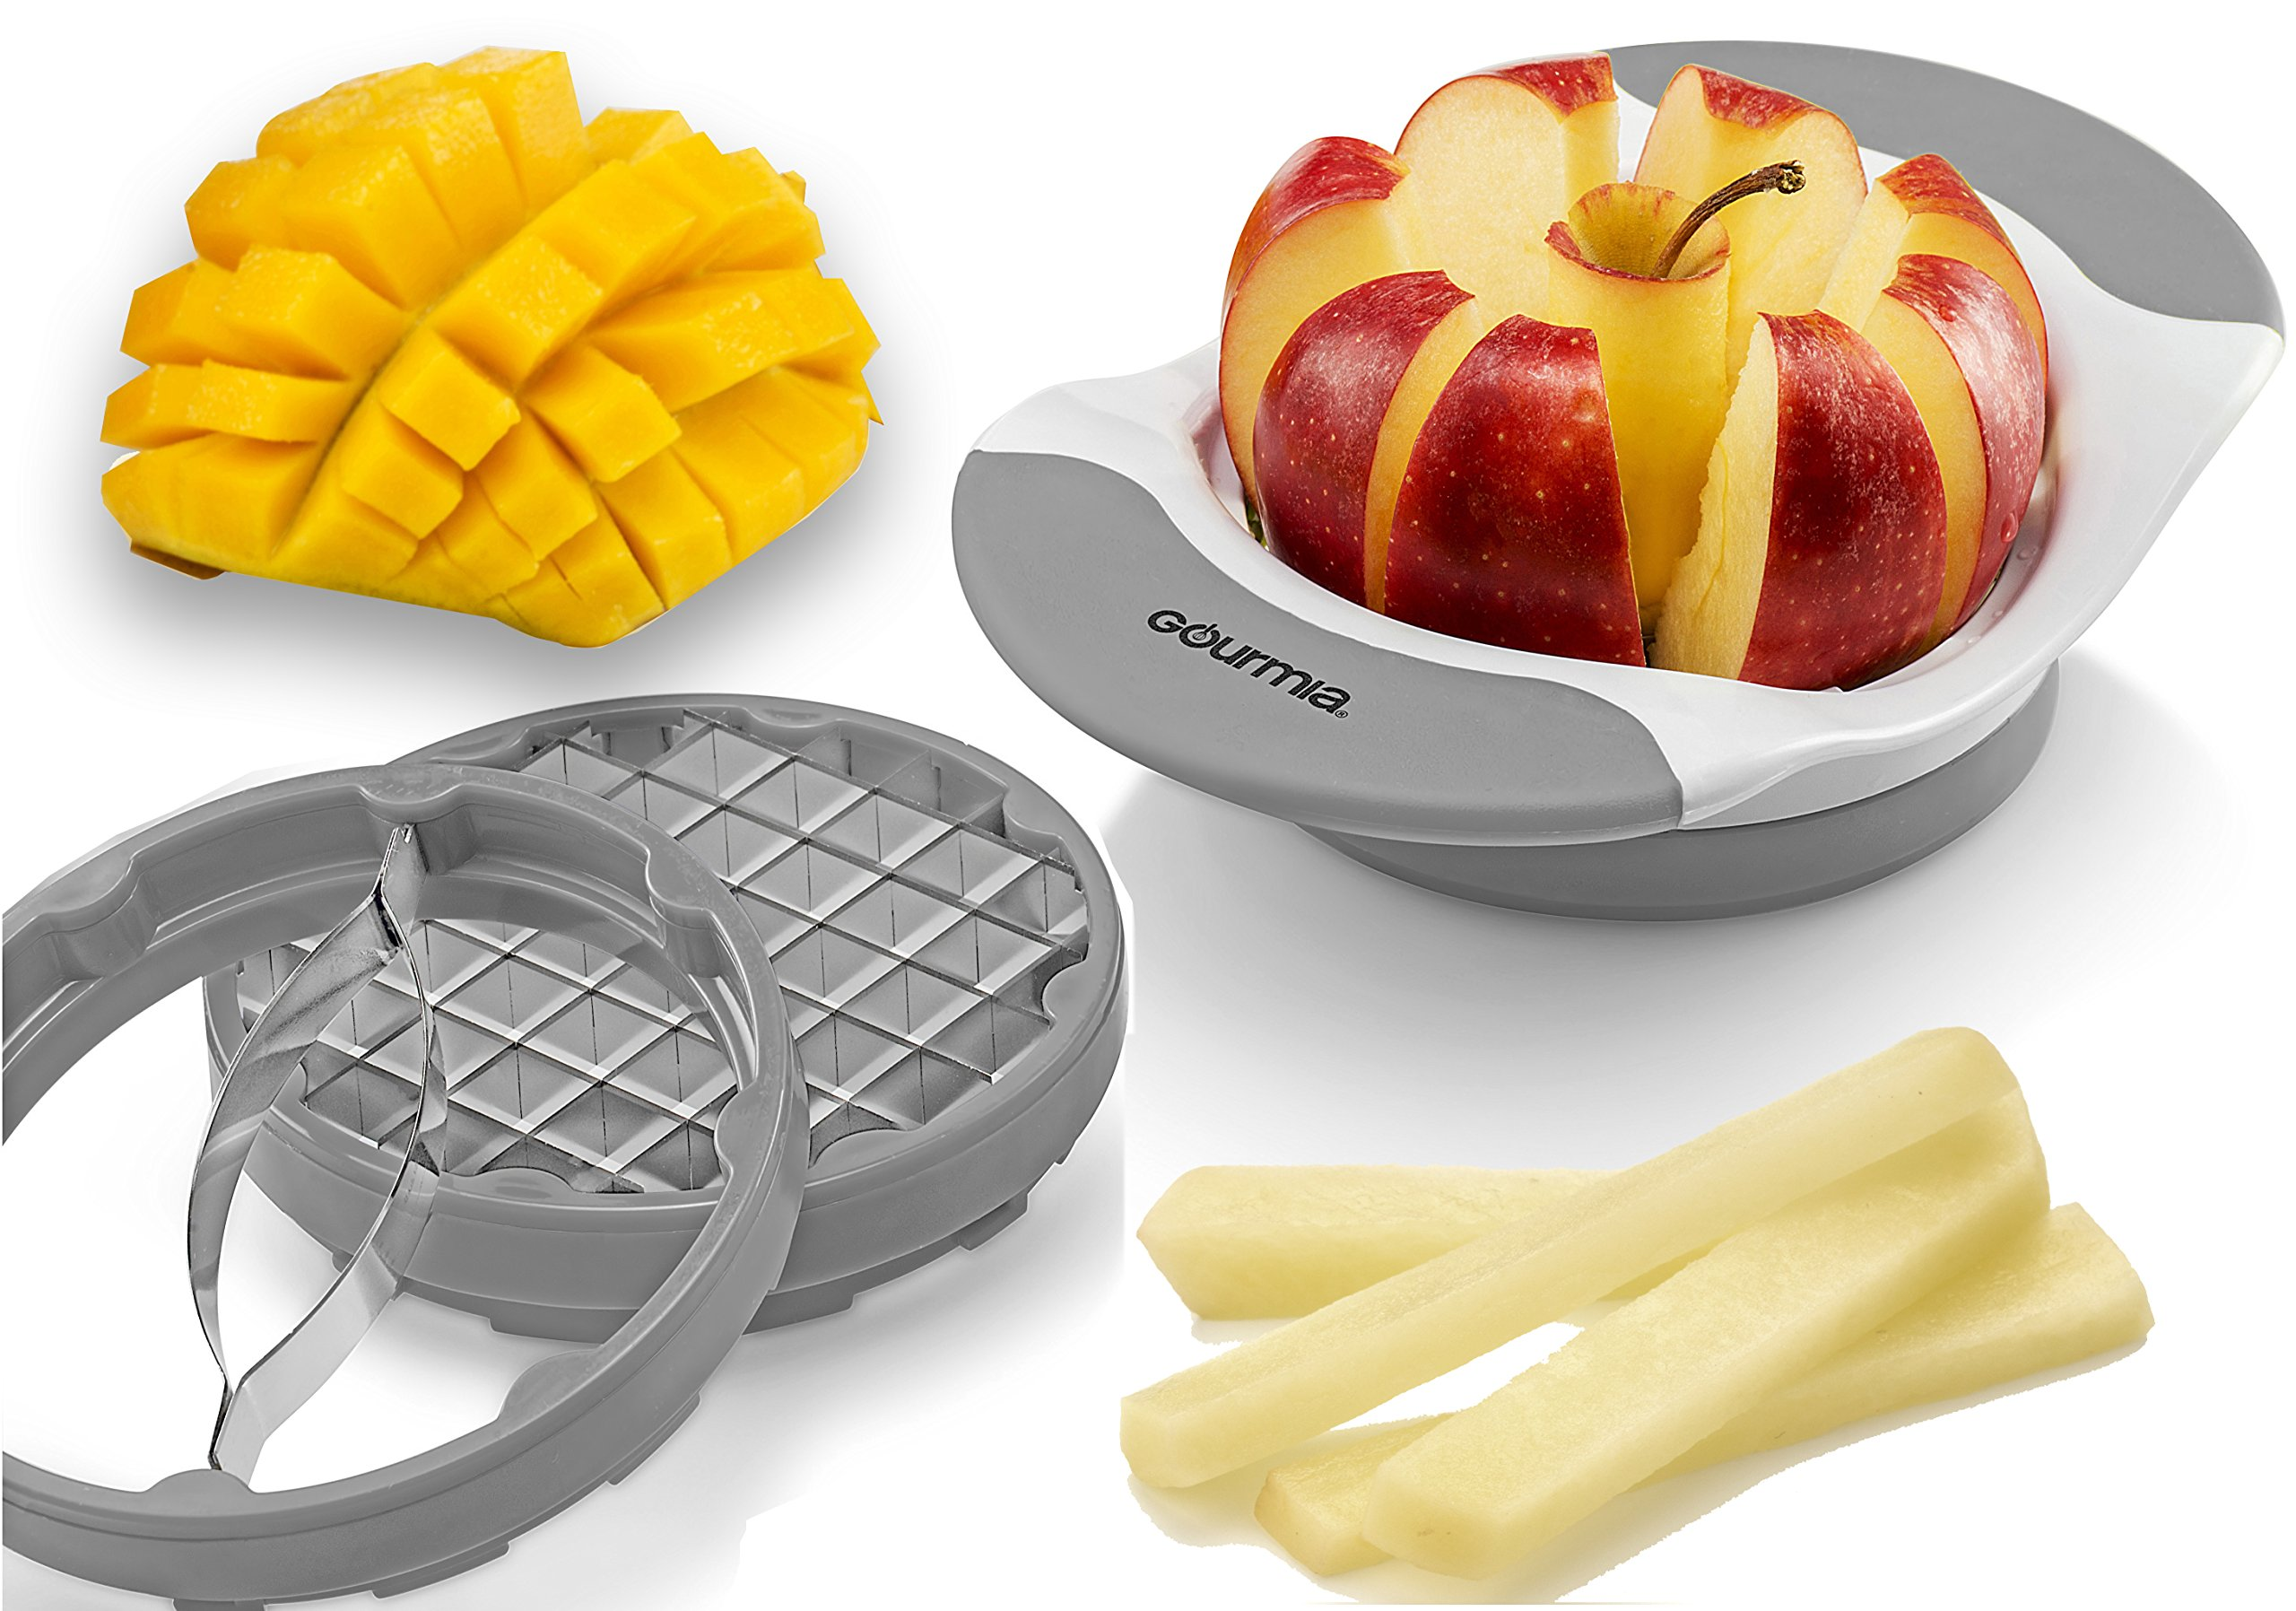 Gourmia 3 In 1 Handle Push Cutter, Mango, Apple Slicer & Corer With Bonus French Fries Blade, 3 Stainless Steel And Interchangeable Blades, Durable BPA free food safe material (Gray) by Gourmia